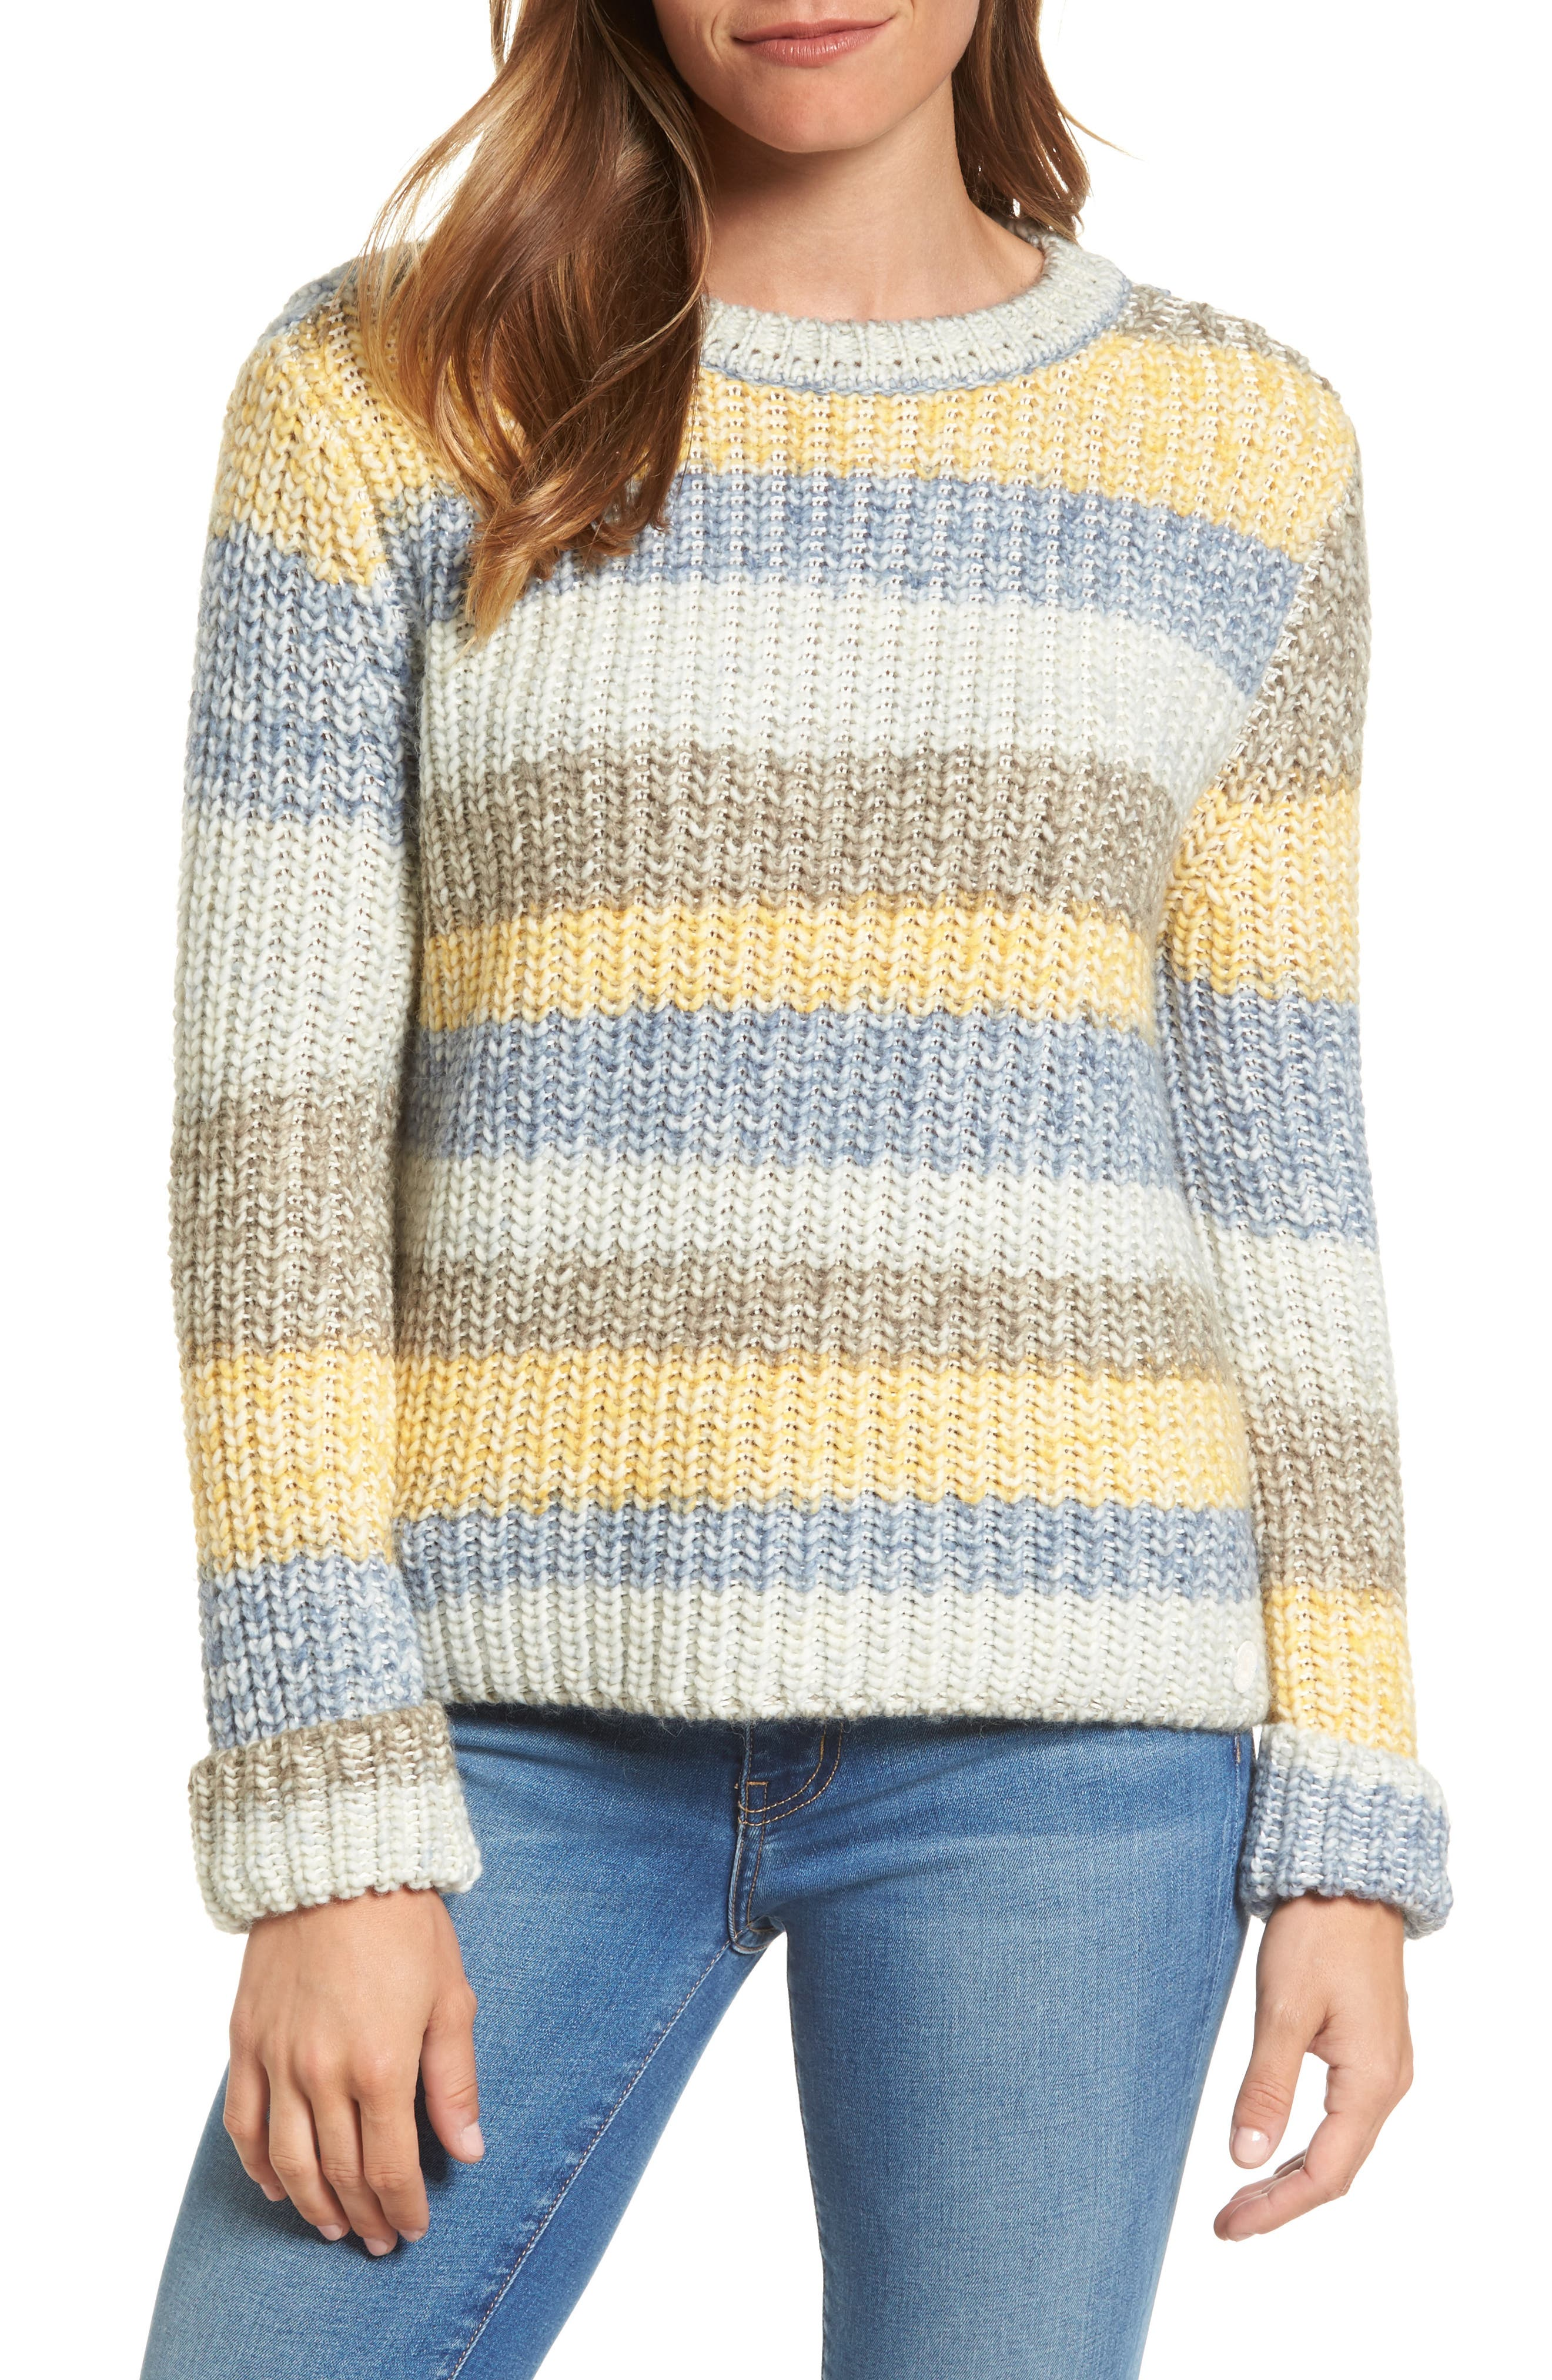 Alternate Image 1 Selected - Barbour Hive Knit Fisherman Sweater